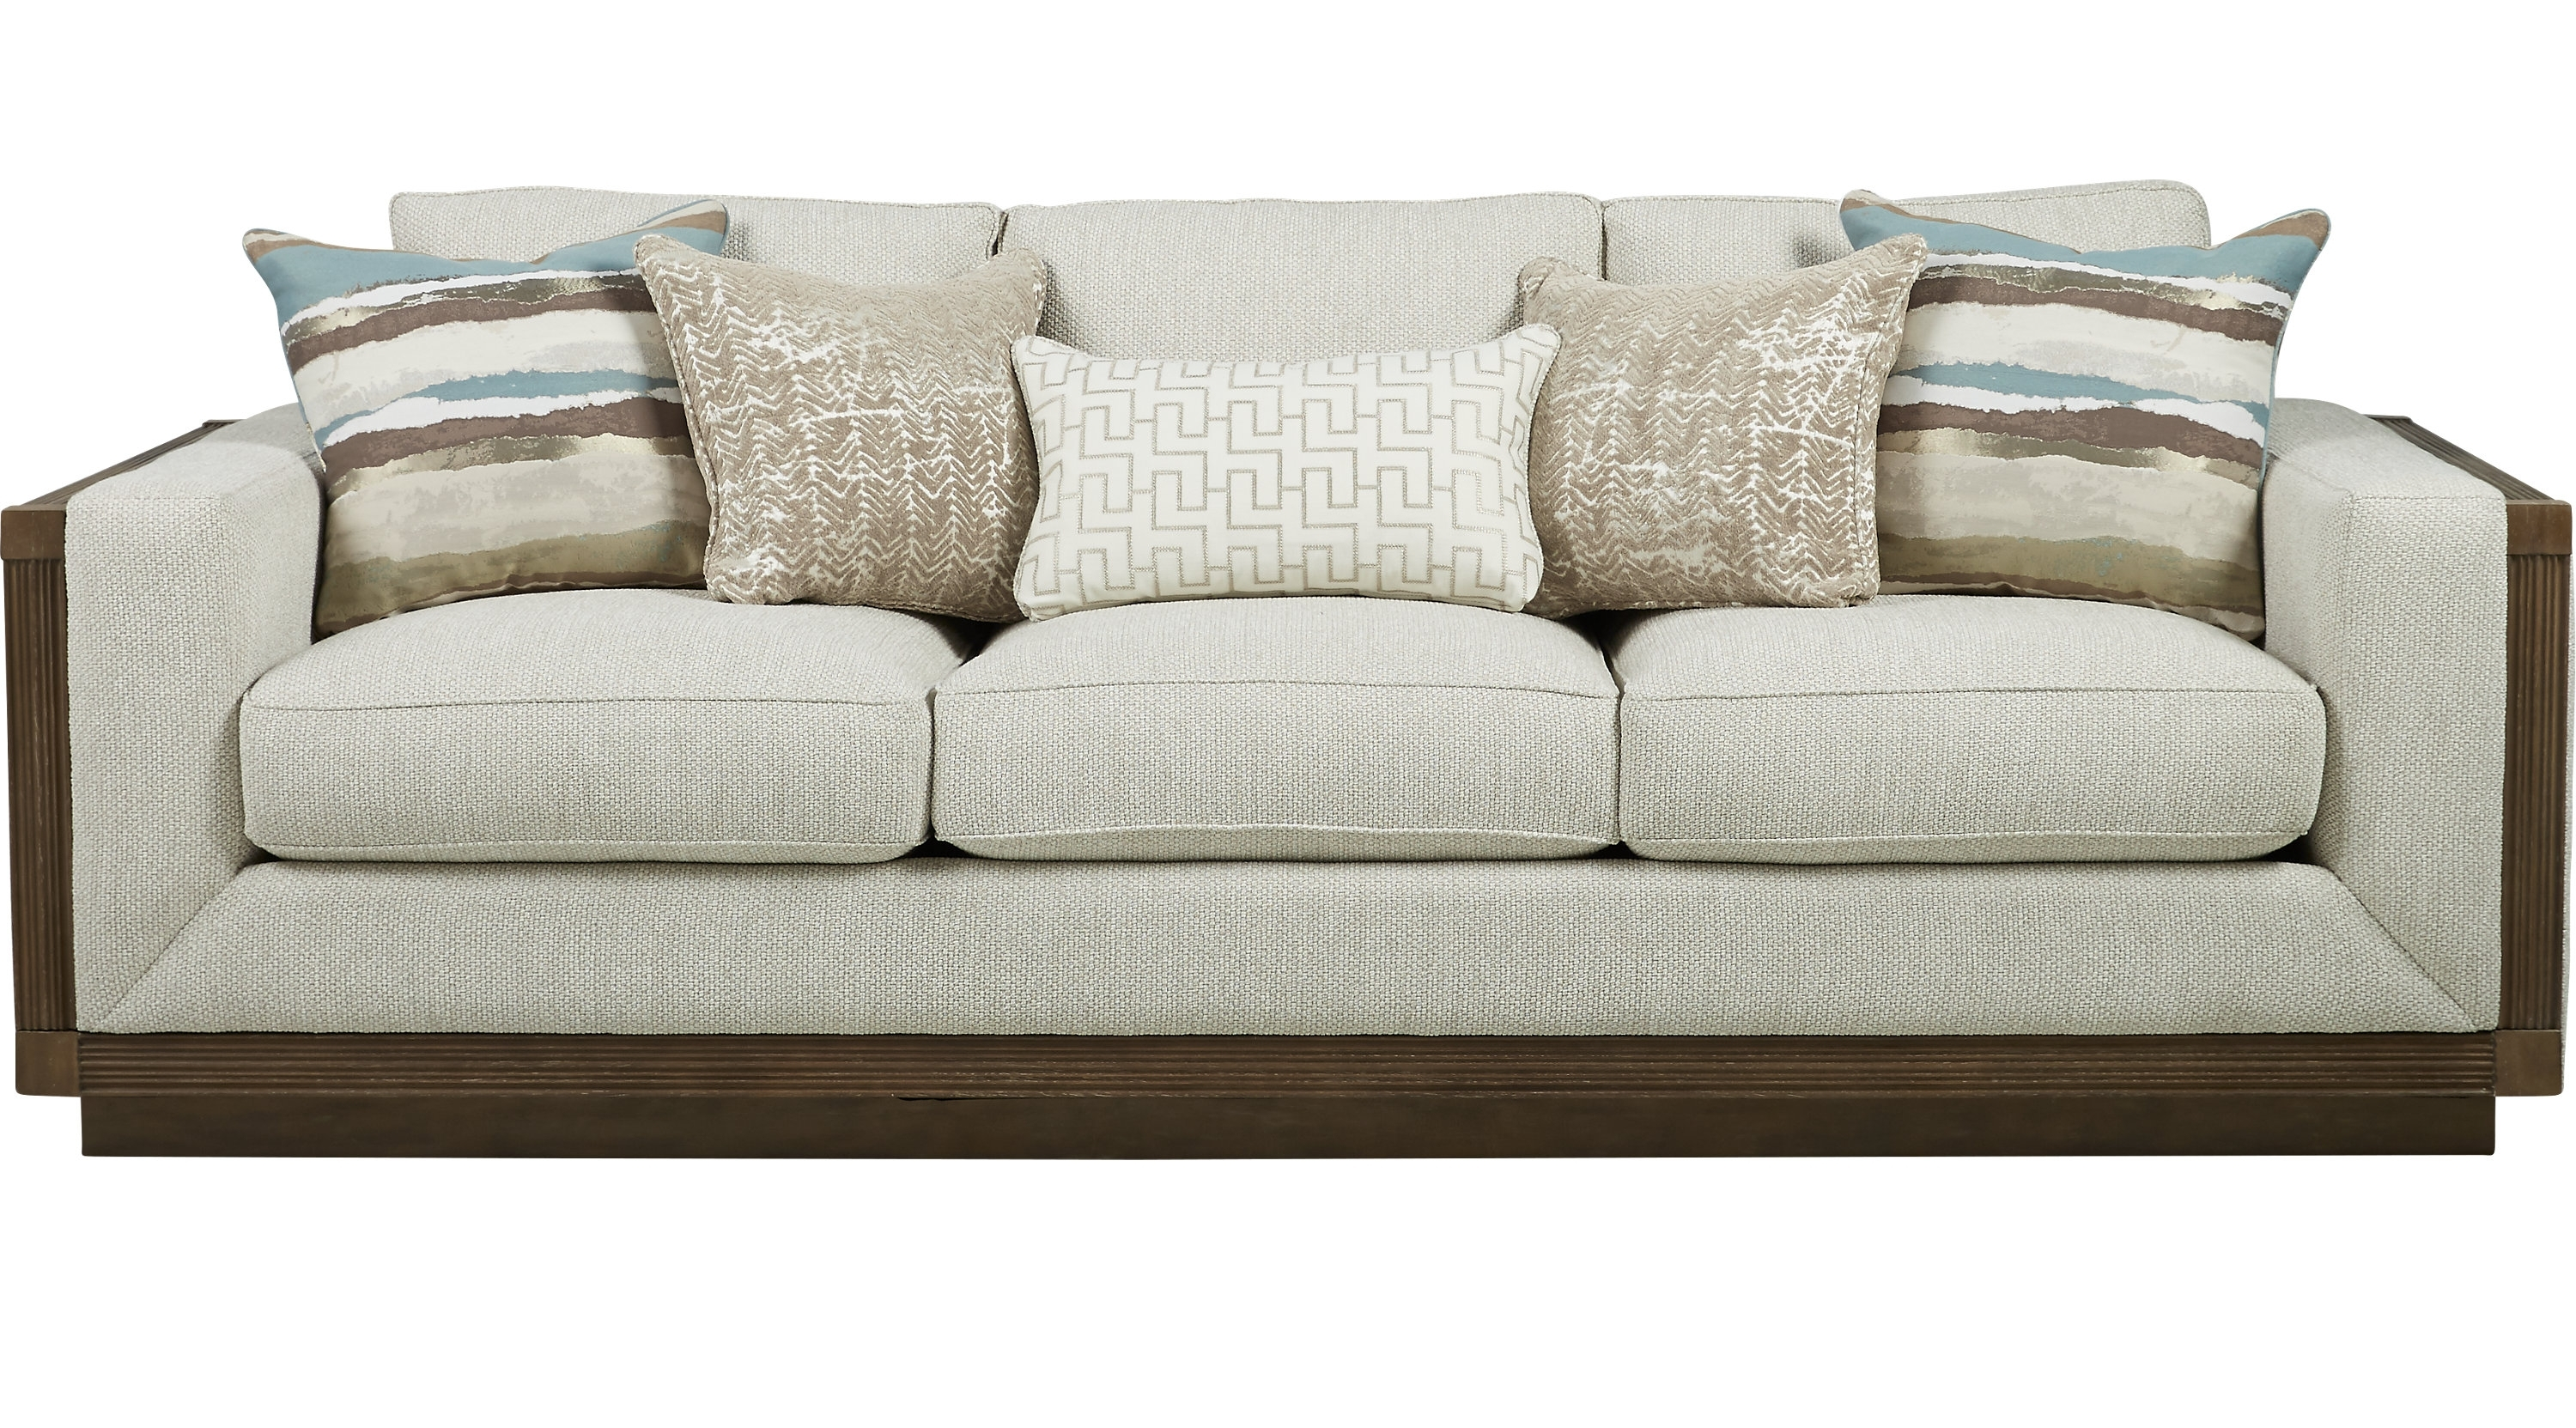 Most Popular Cindy Crawford Sofas With Regard To Best Good Cindy Crawford Couches # (View 12 of 20)